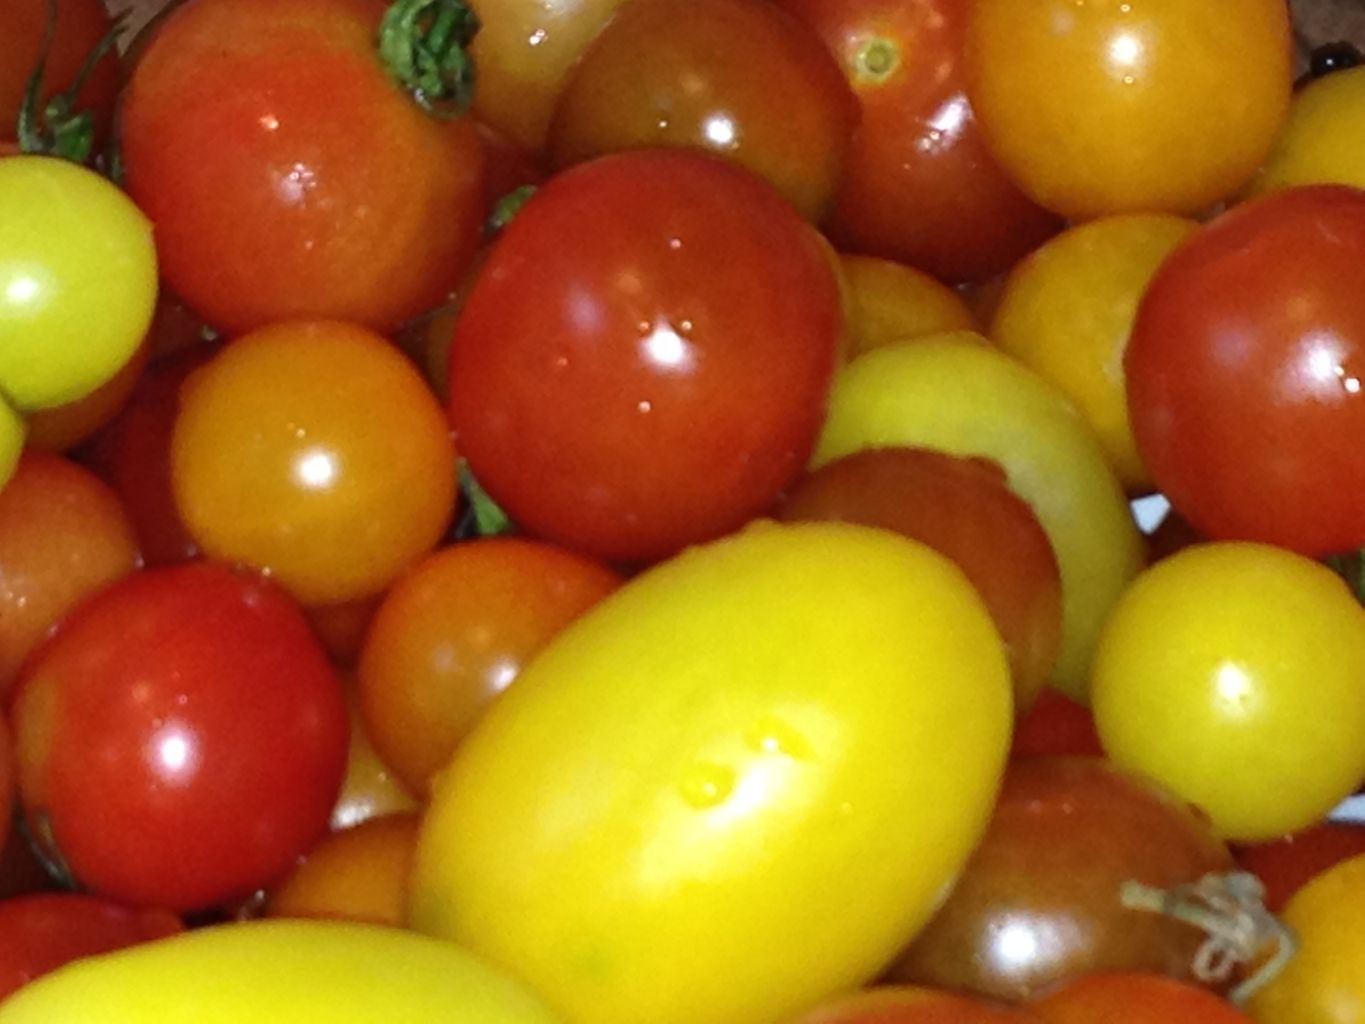 Red, orange and yellow tomatoes